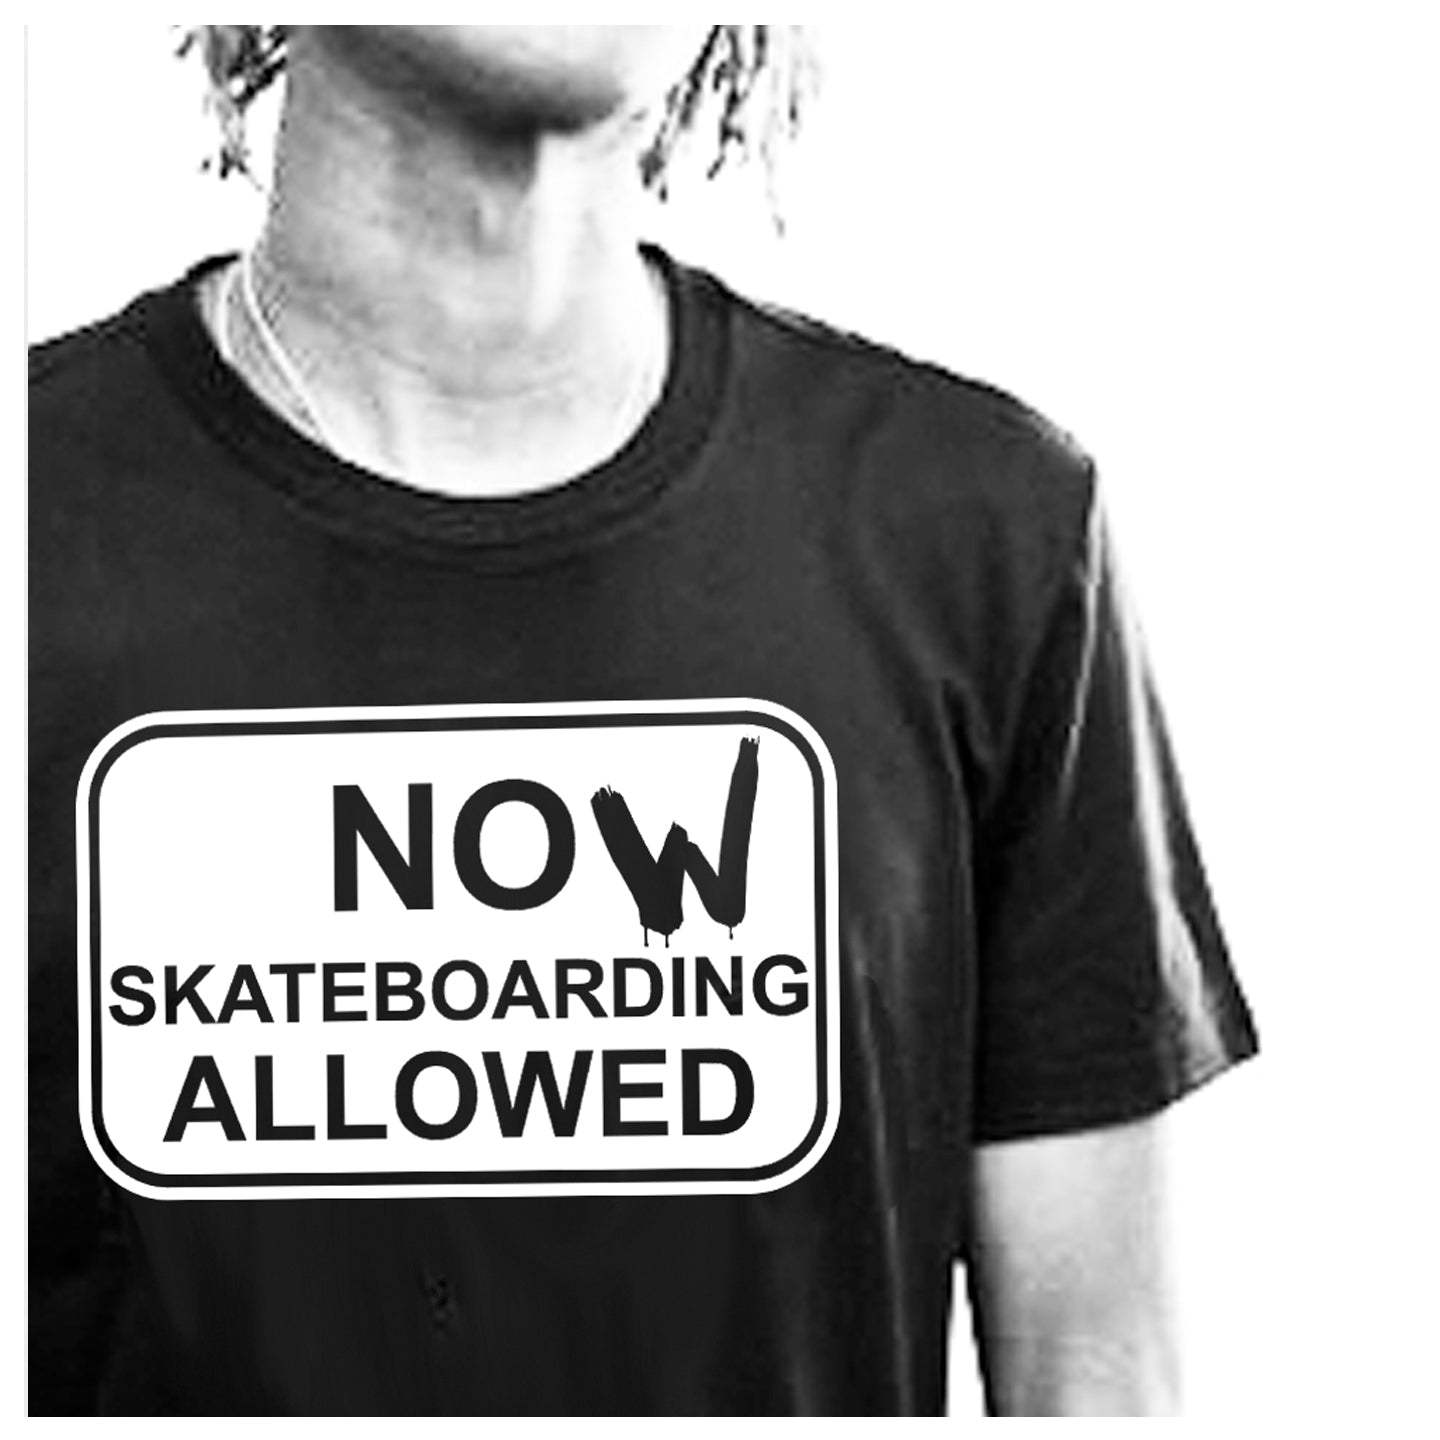 NoW Skateboarding Allowed ...